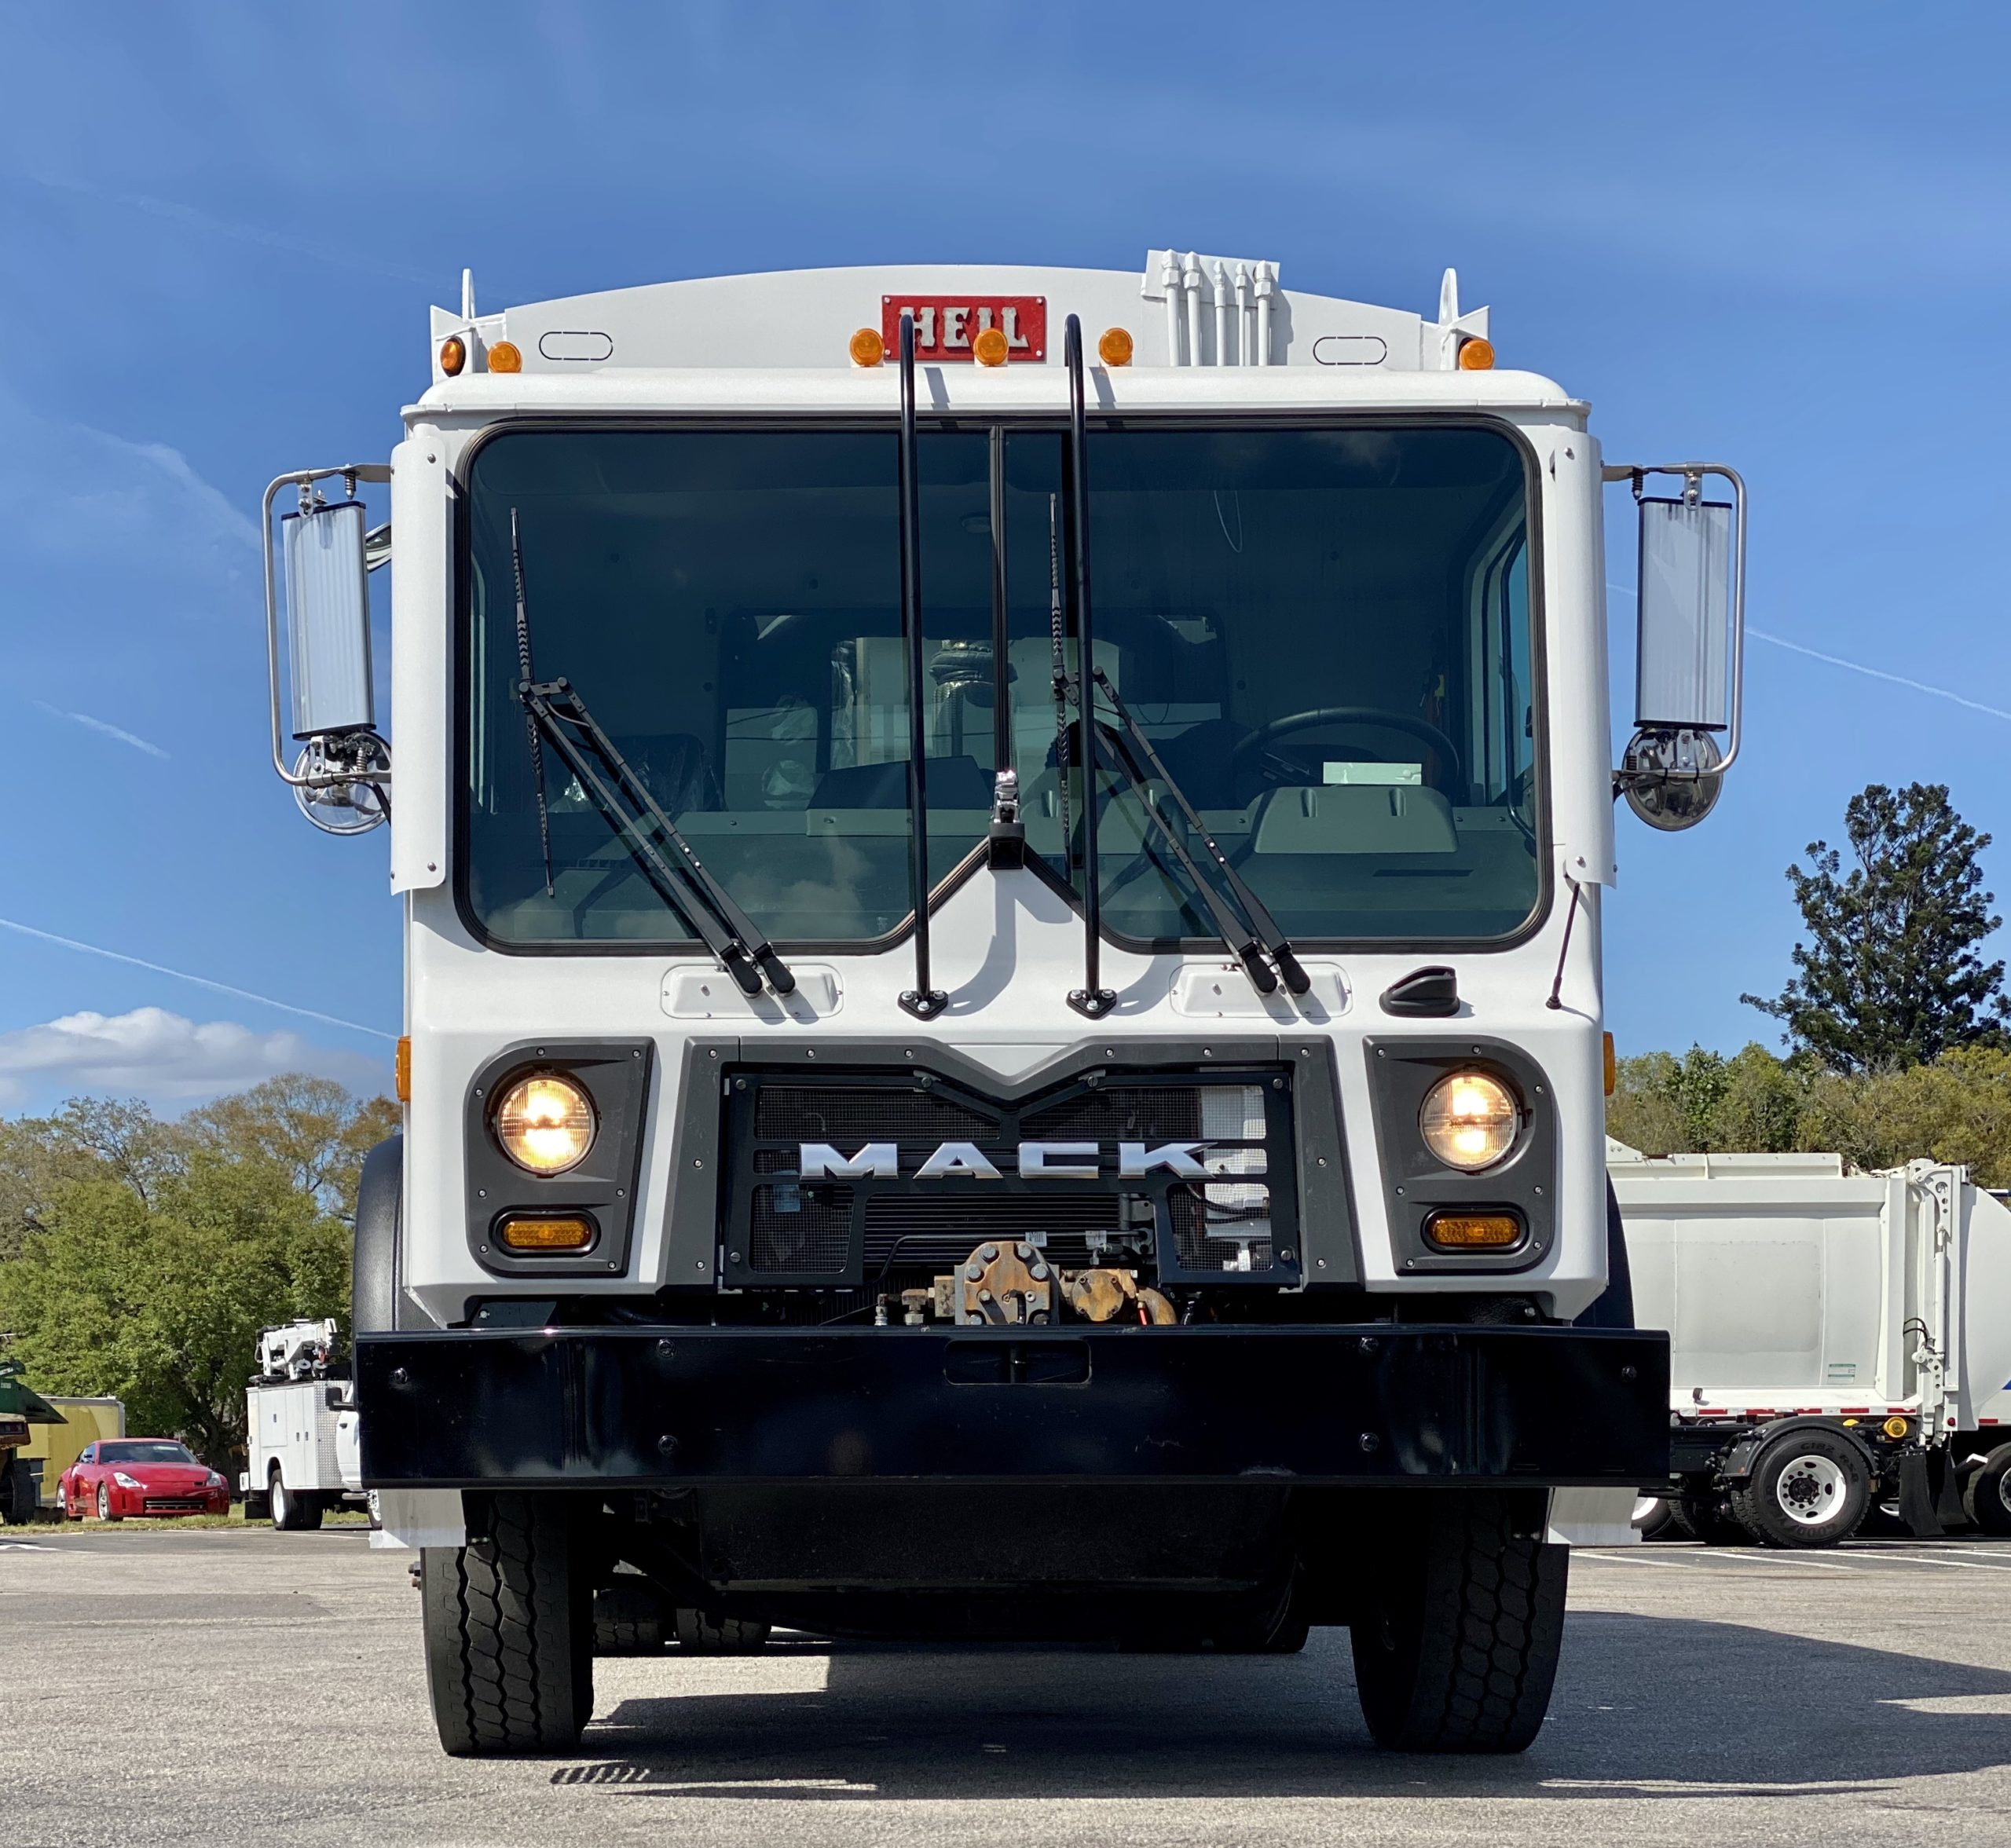 Mack garbage truck for sale